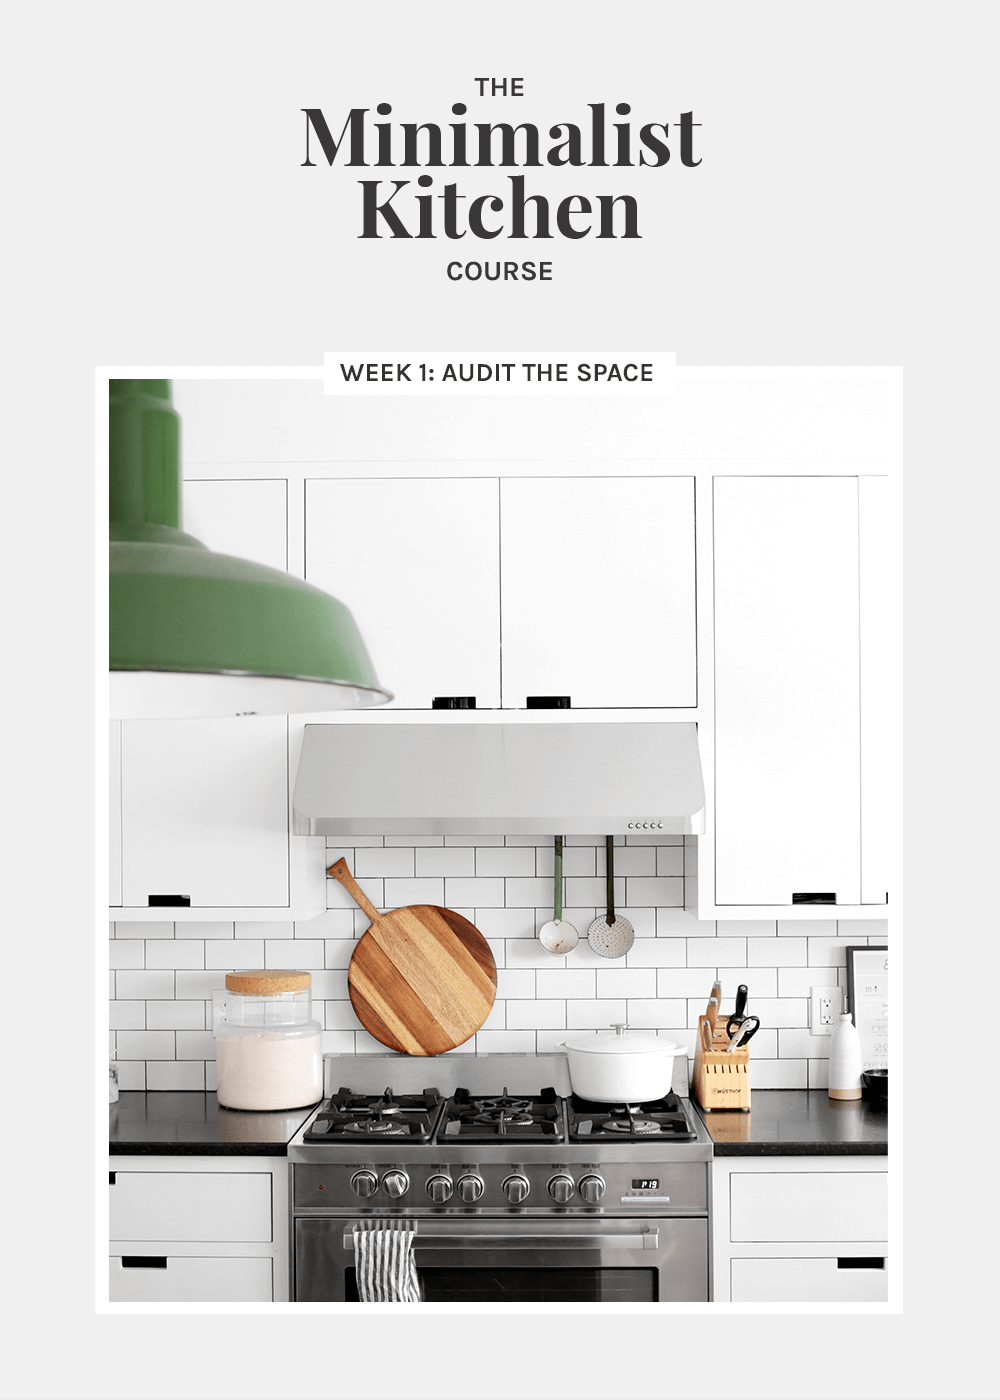 The Minimalist Kitchen week 1 site audit from The Faux Martha